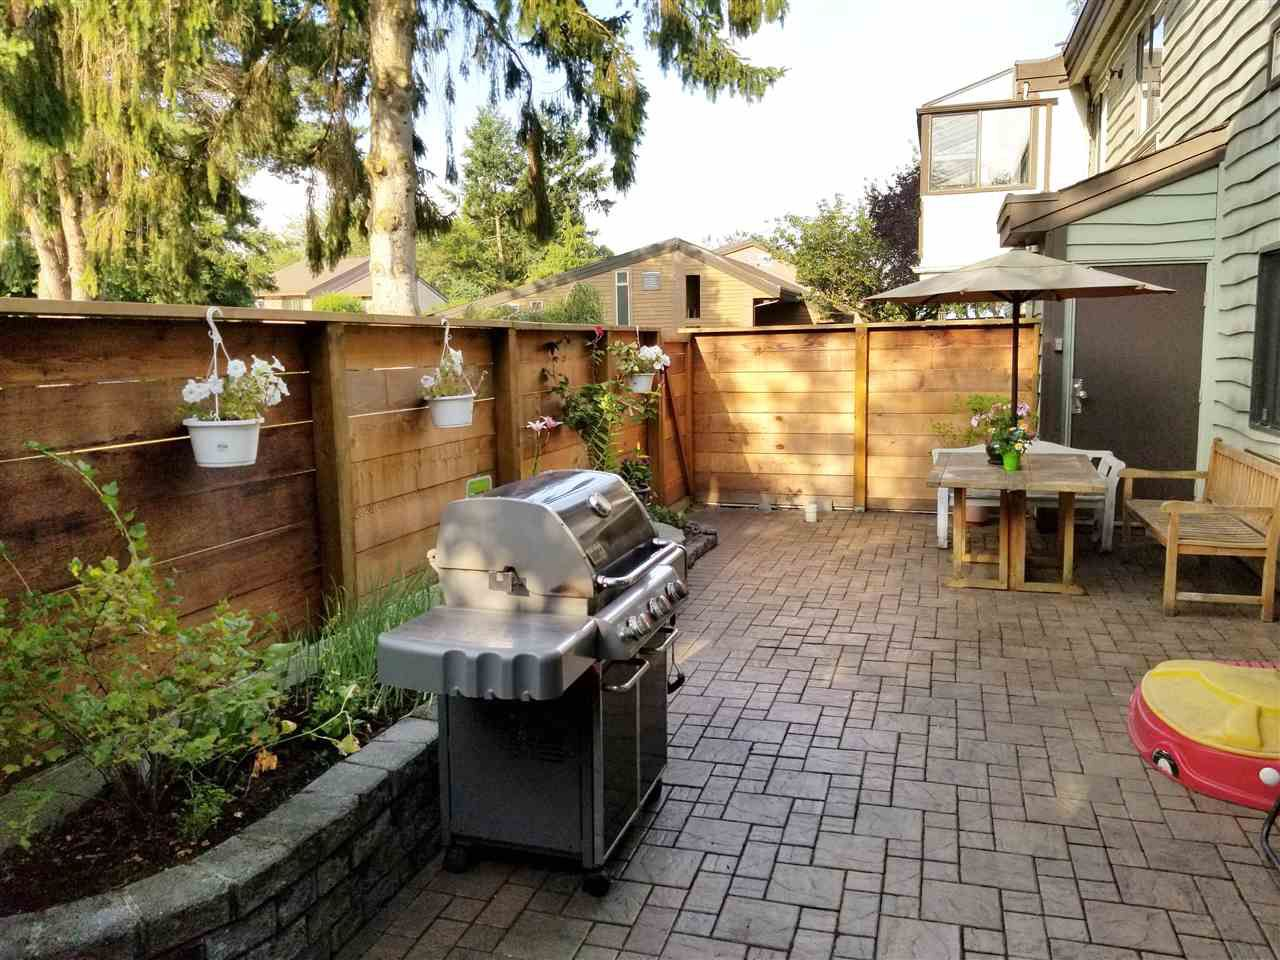 Extra large Patio with Interlocking Stones and Two Storage Sheds and New Fence